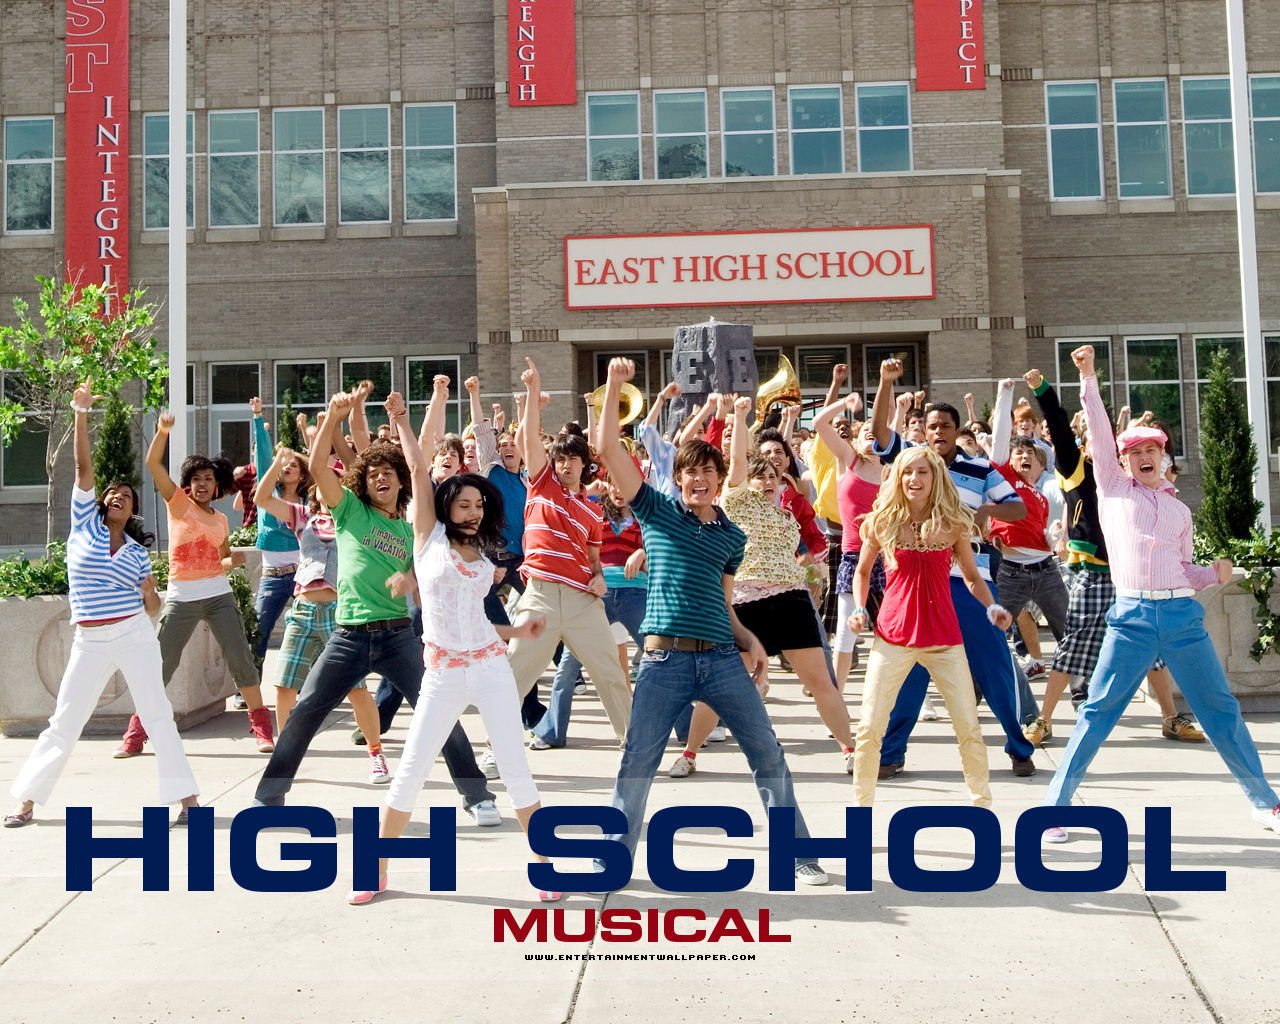 hih school musical: